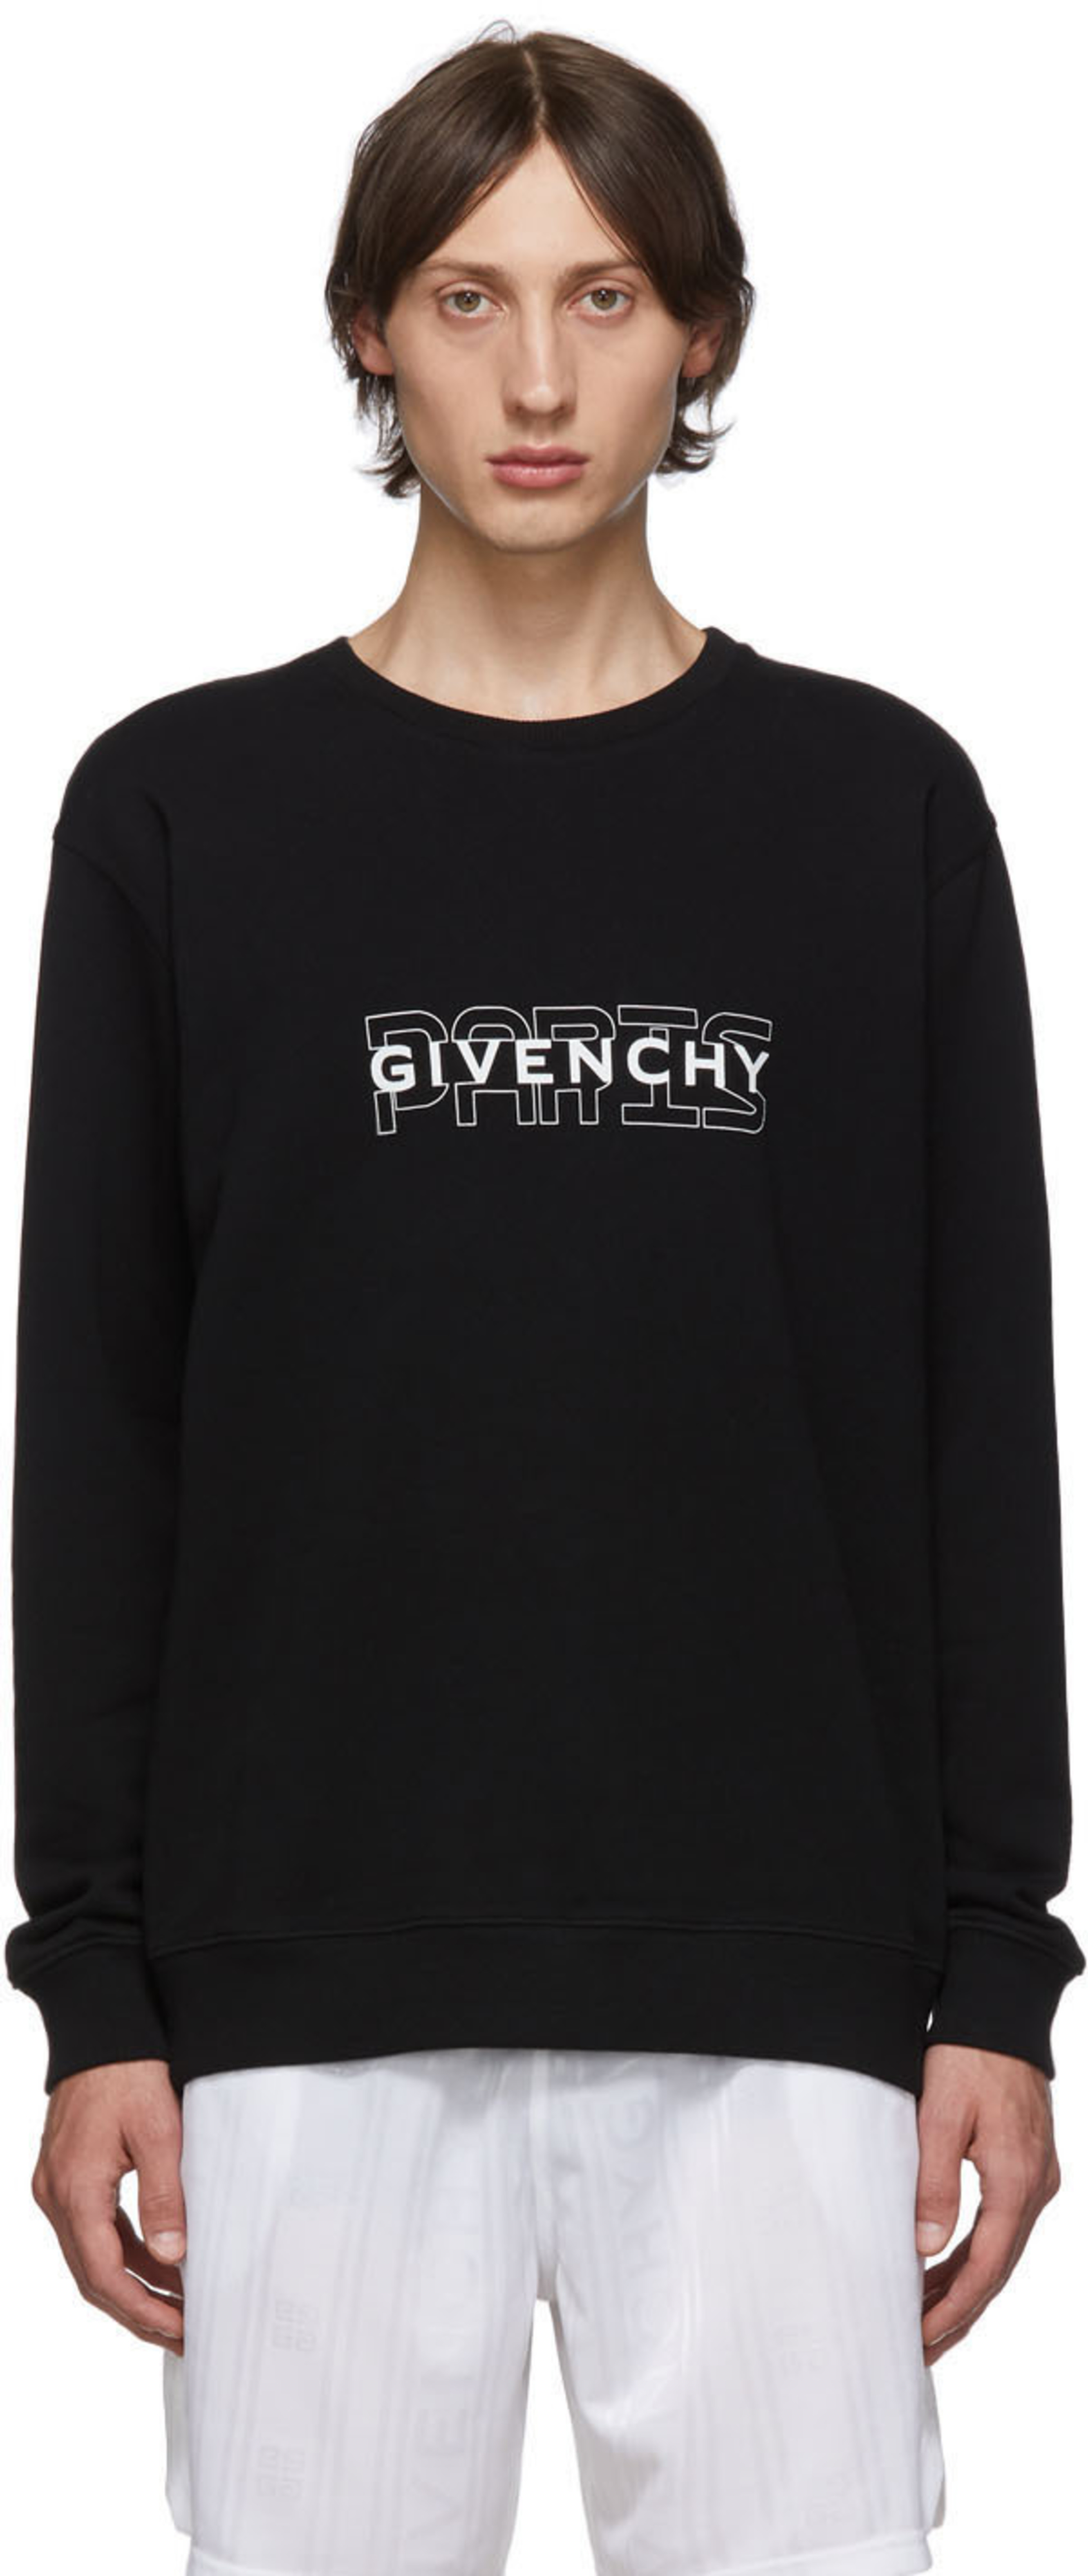 6a8430c05 Givenchy for Men FW19 Collection | SSENSE UK